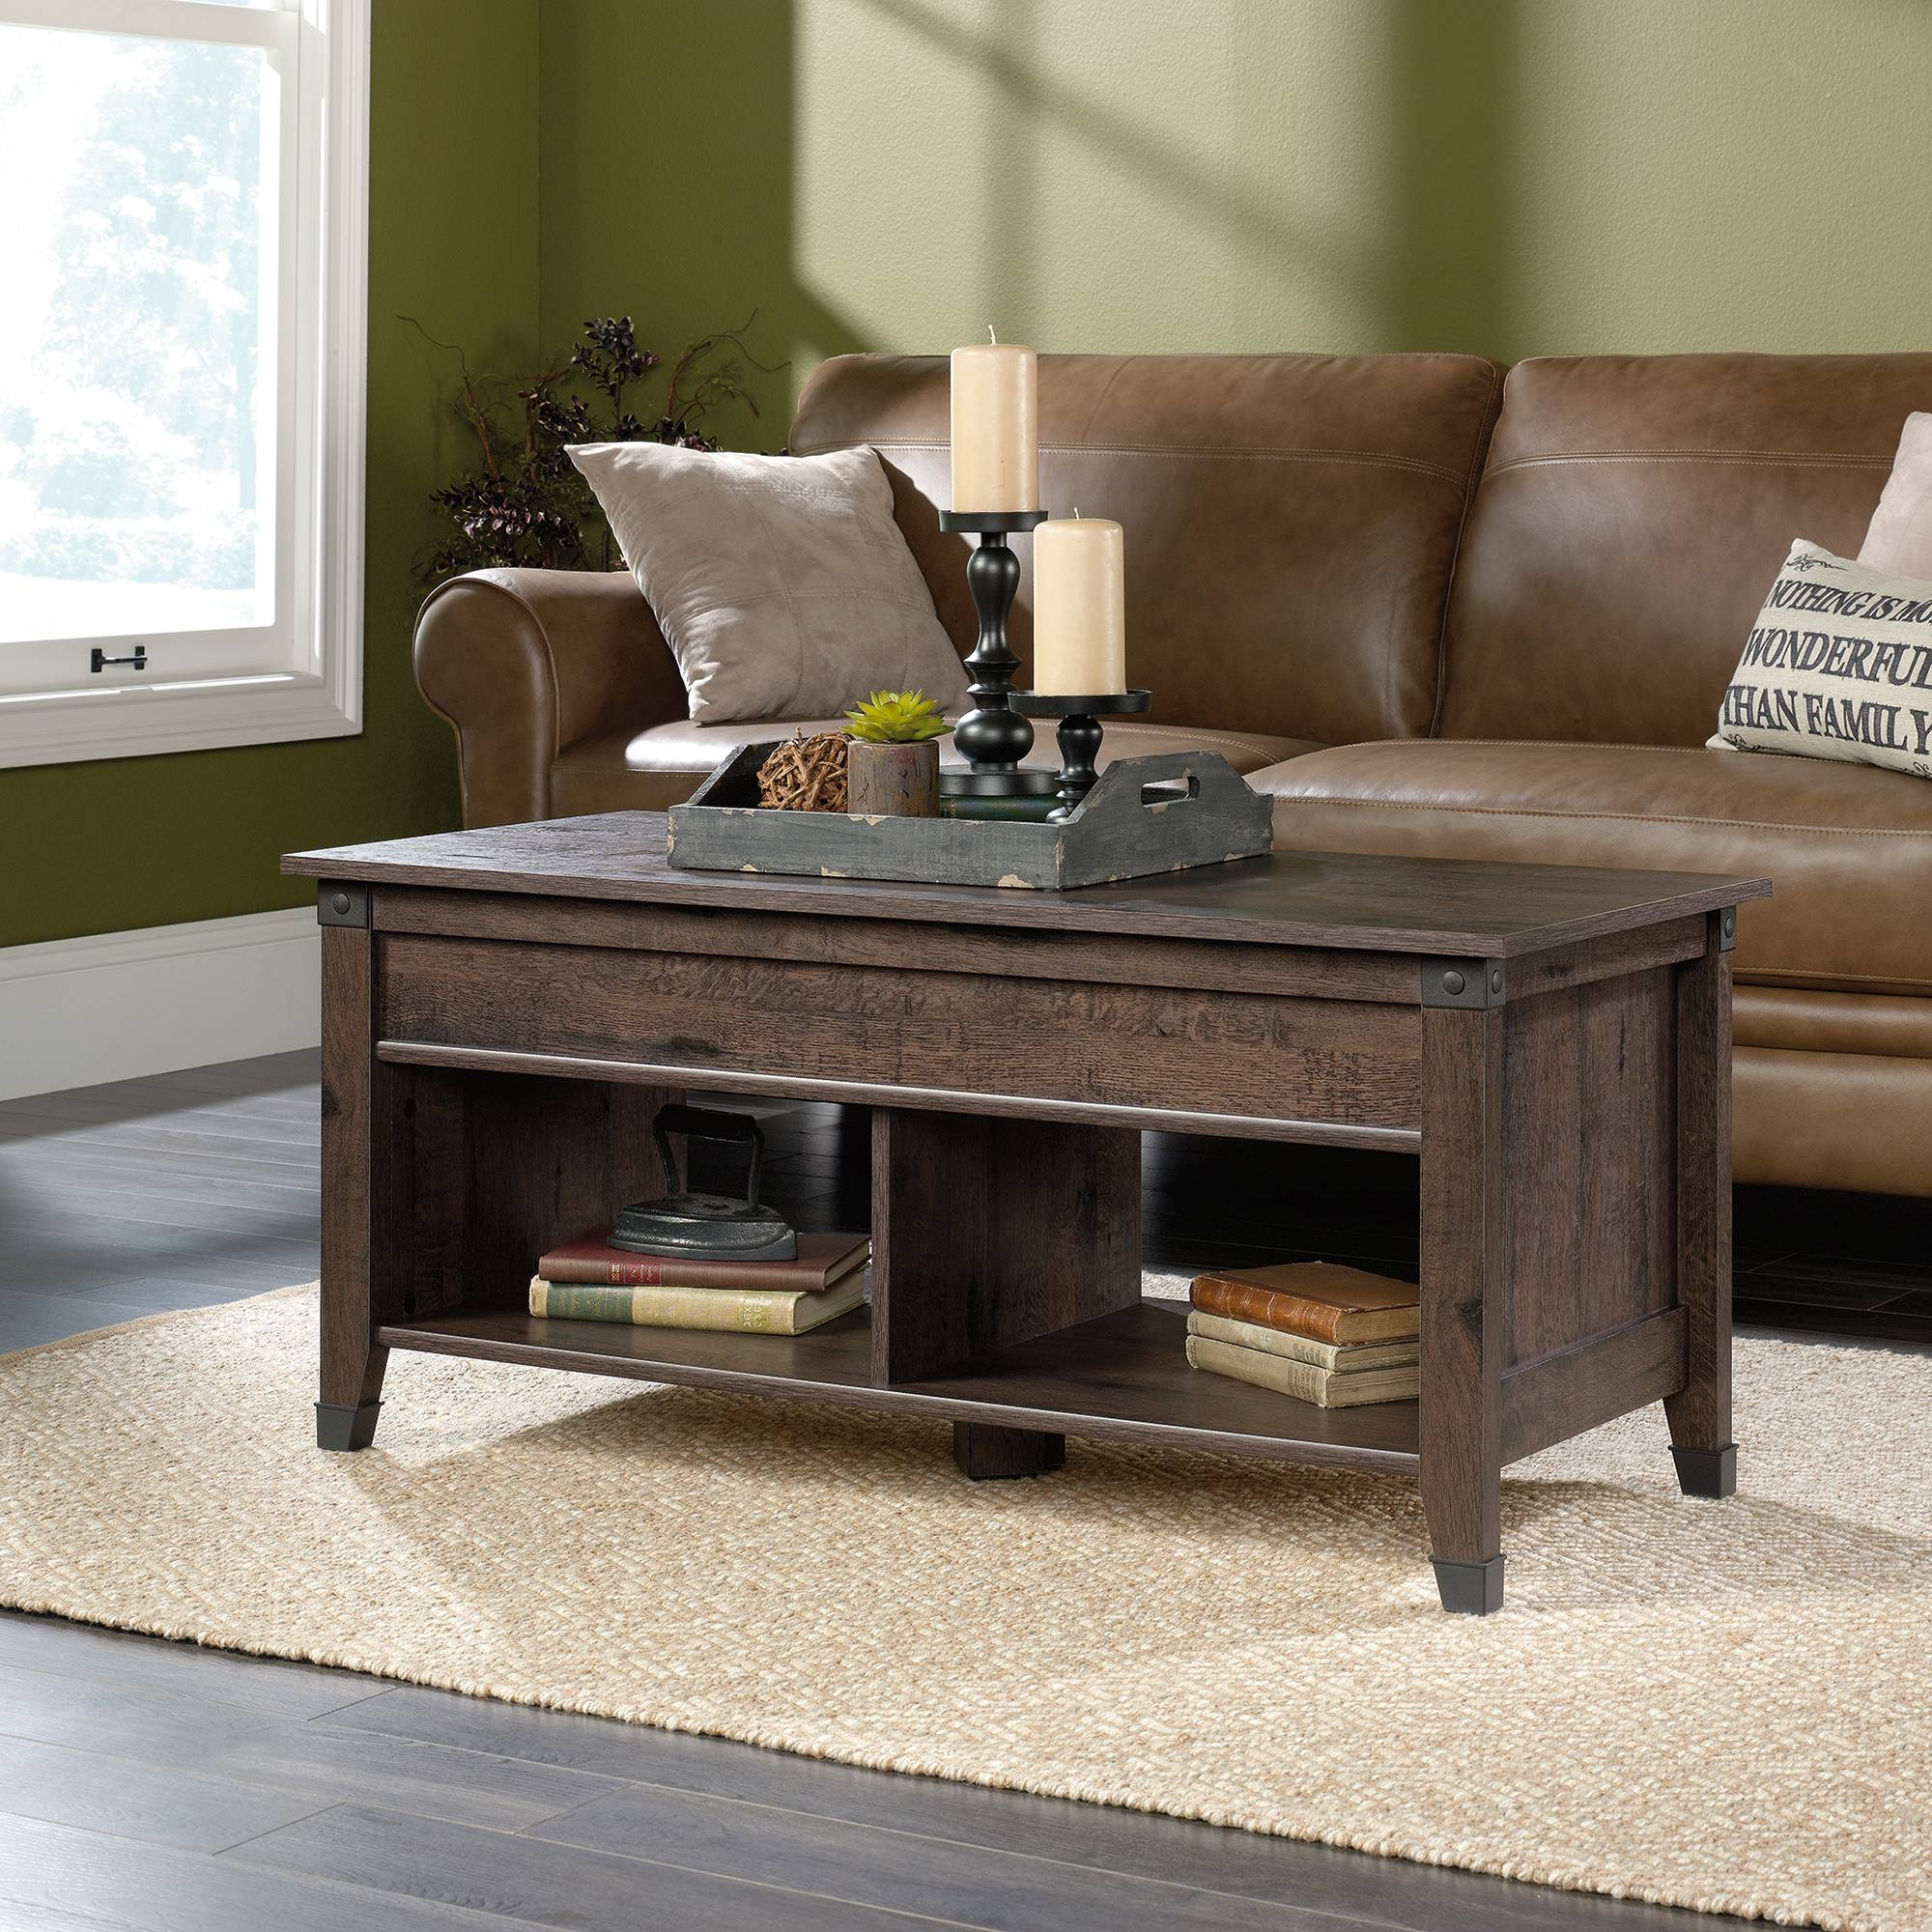 Carson Forge | Lift-Top Coffee Table | 420421 | Sauder with regard to Top Lift Coffee Tables (Image 7 of 30)